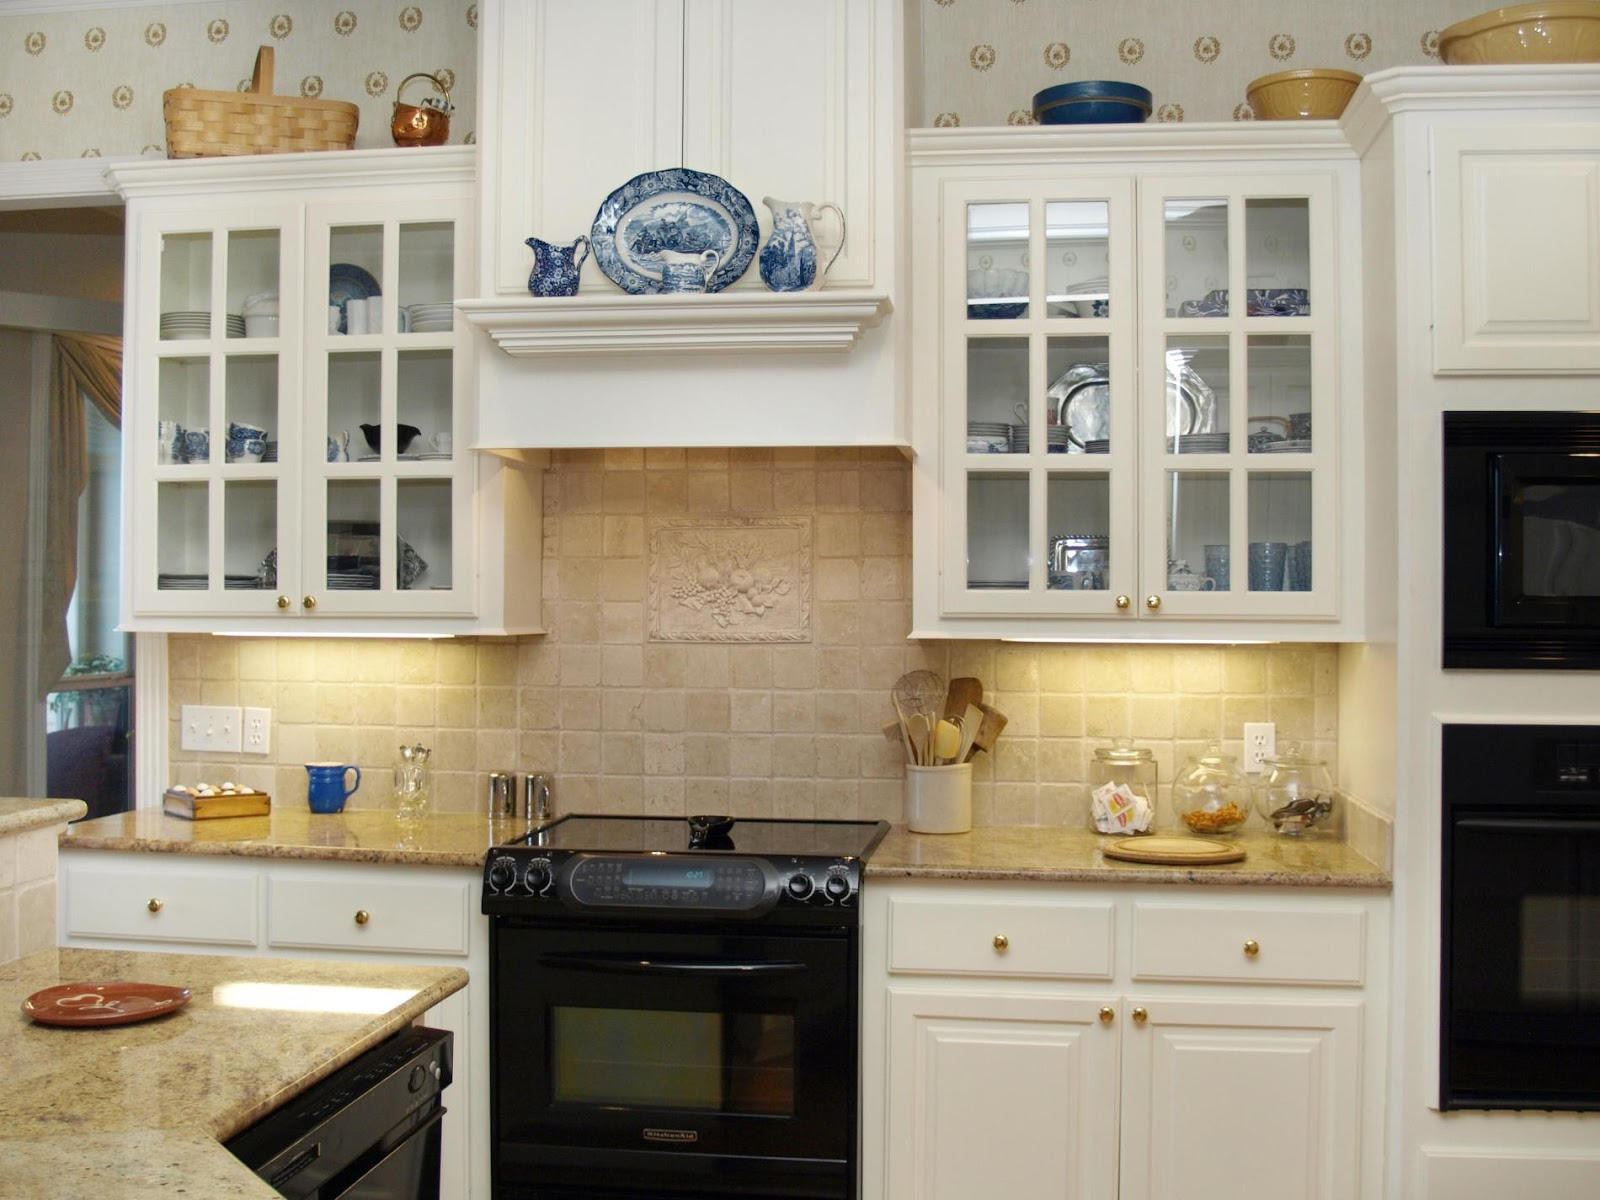 Kitchen shelves decoration dream house experience for Decorative kitchens